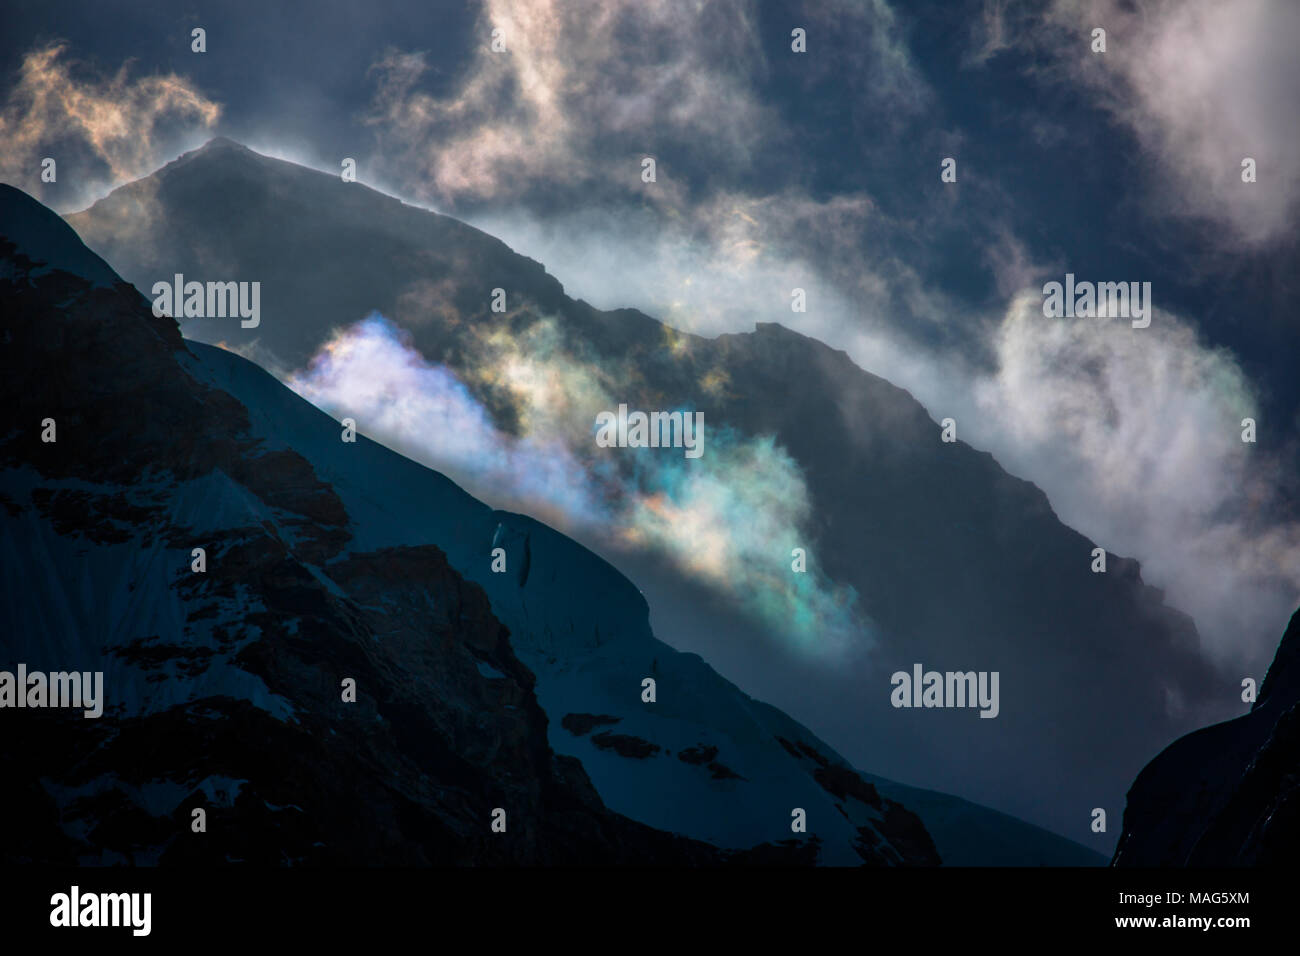 The peak of Mt. Everest shrouded in threatening clouds during early morning.  Nepal - Stock Image